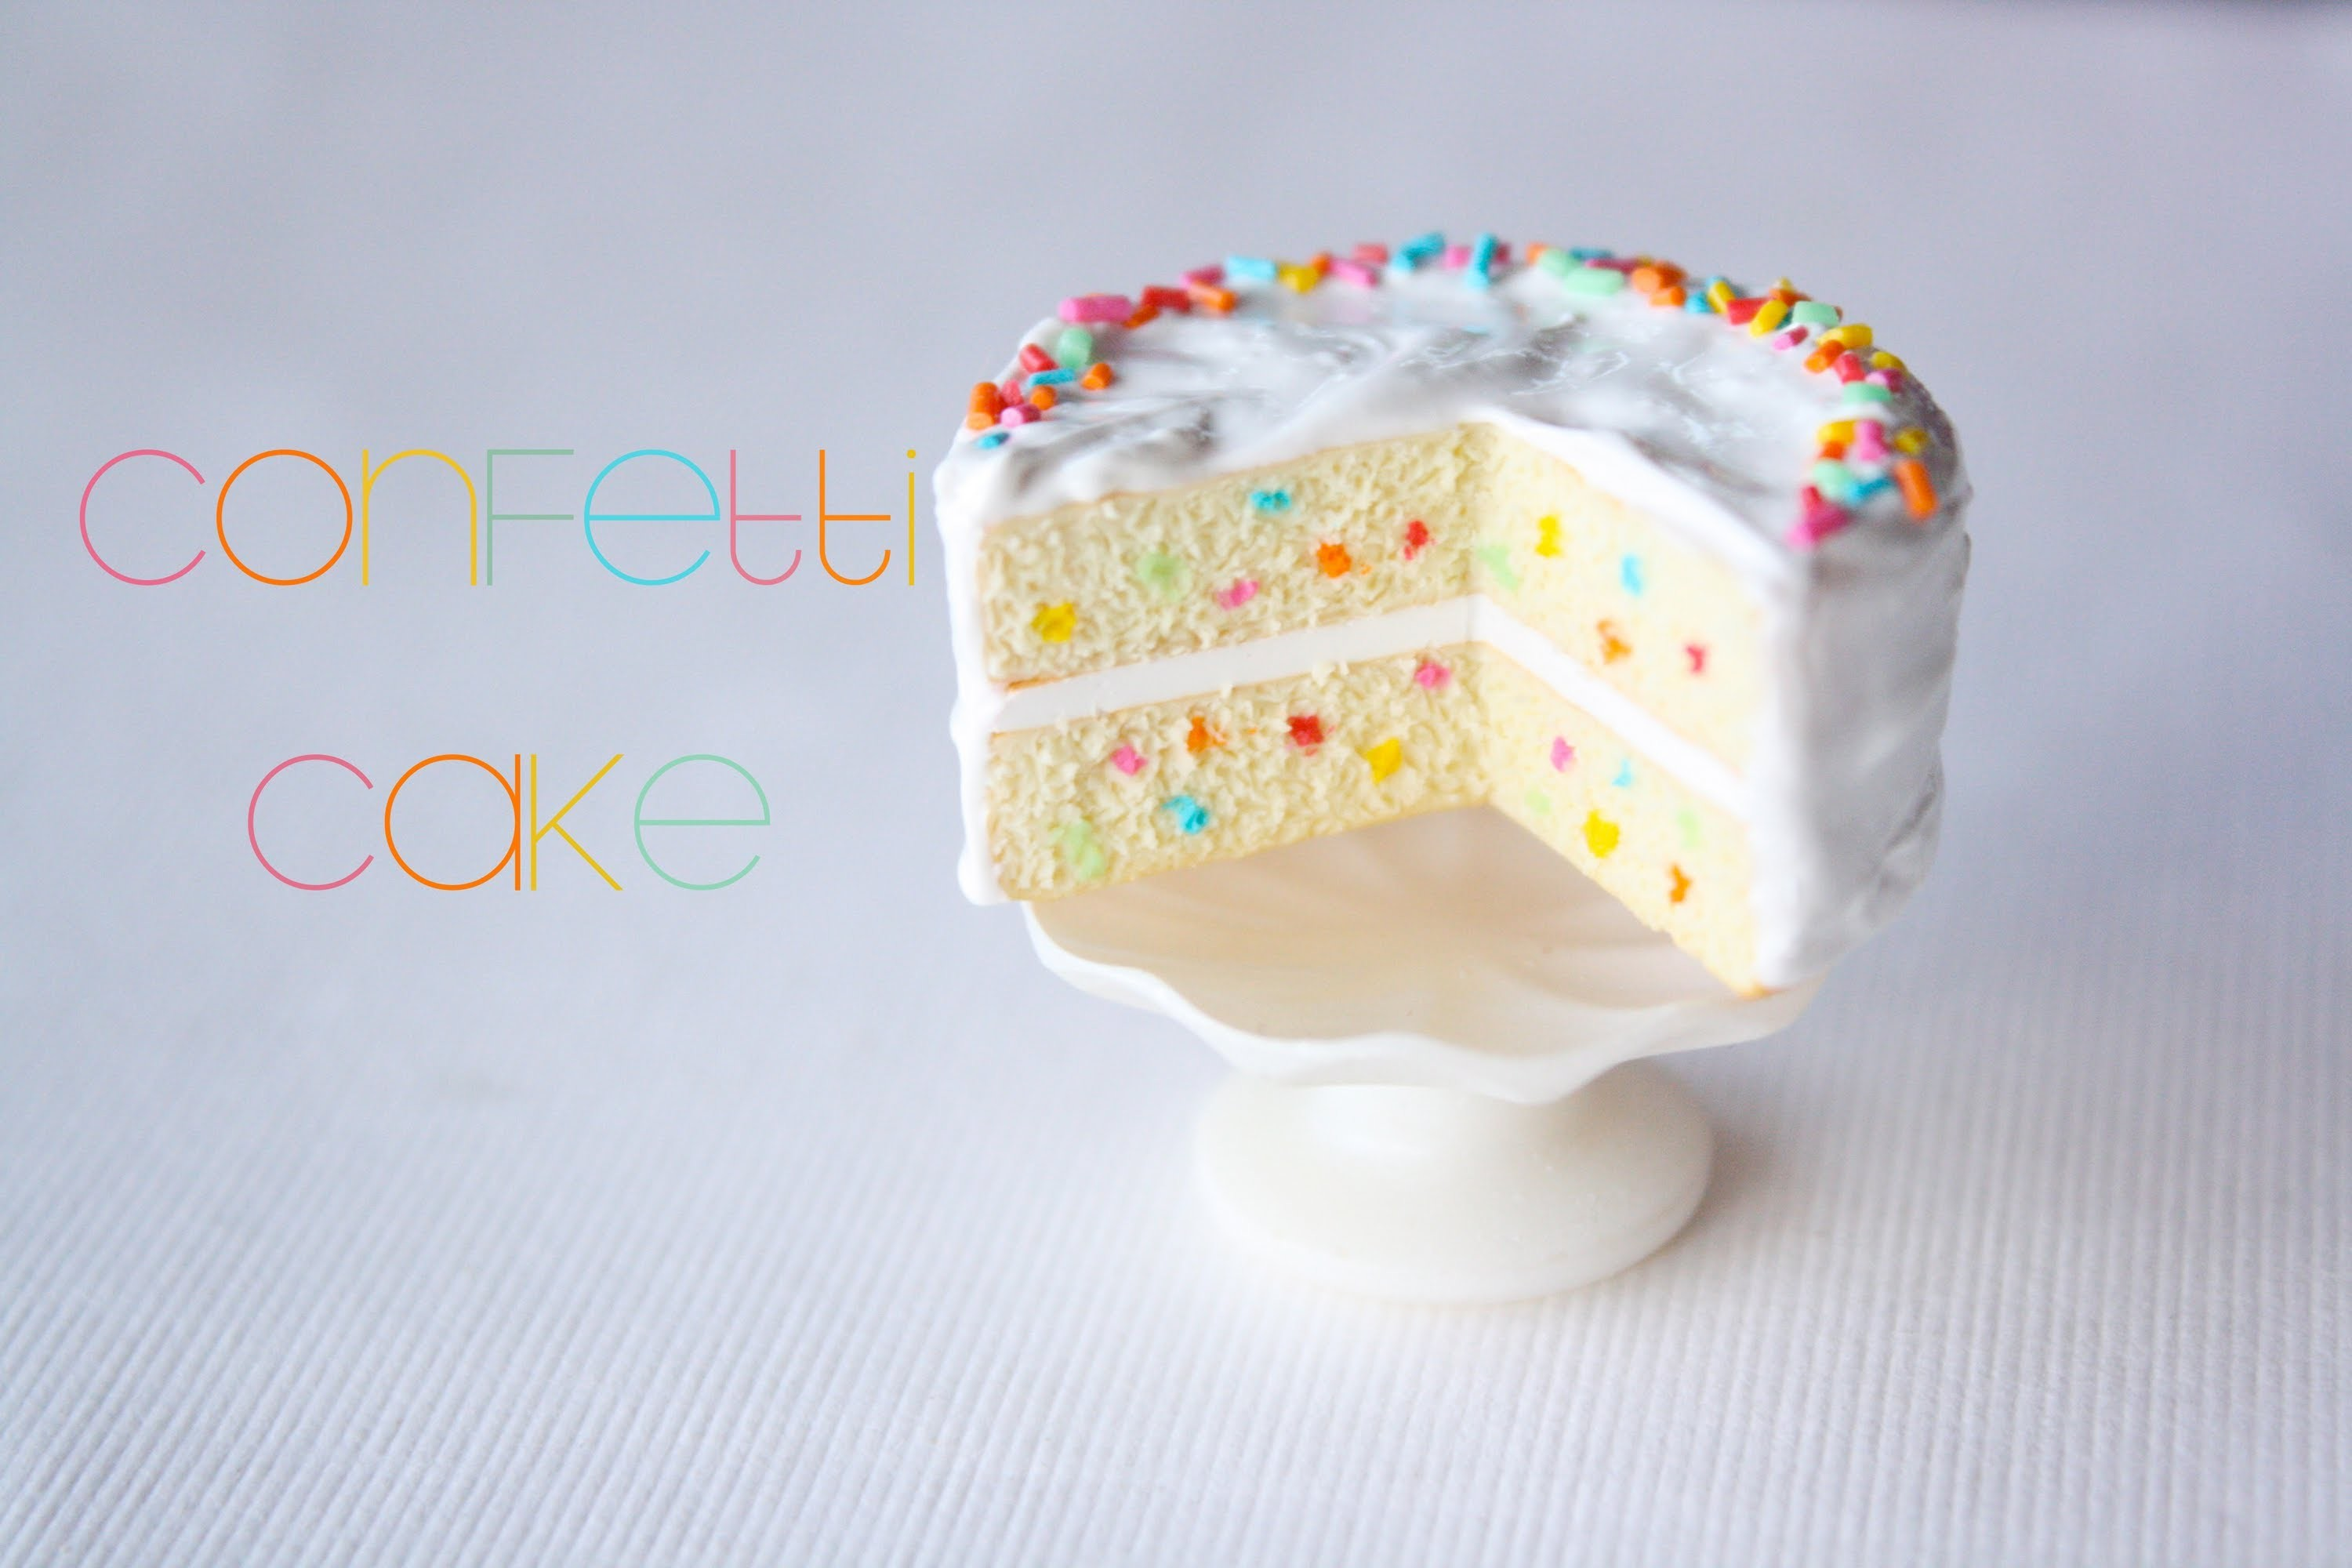 Confetti Cake : How To Make A Miniature Dollhouse Cake : Polymer Clay Tutorial